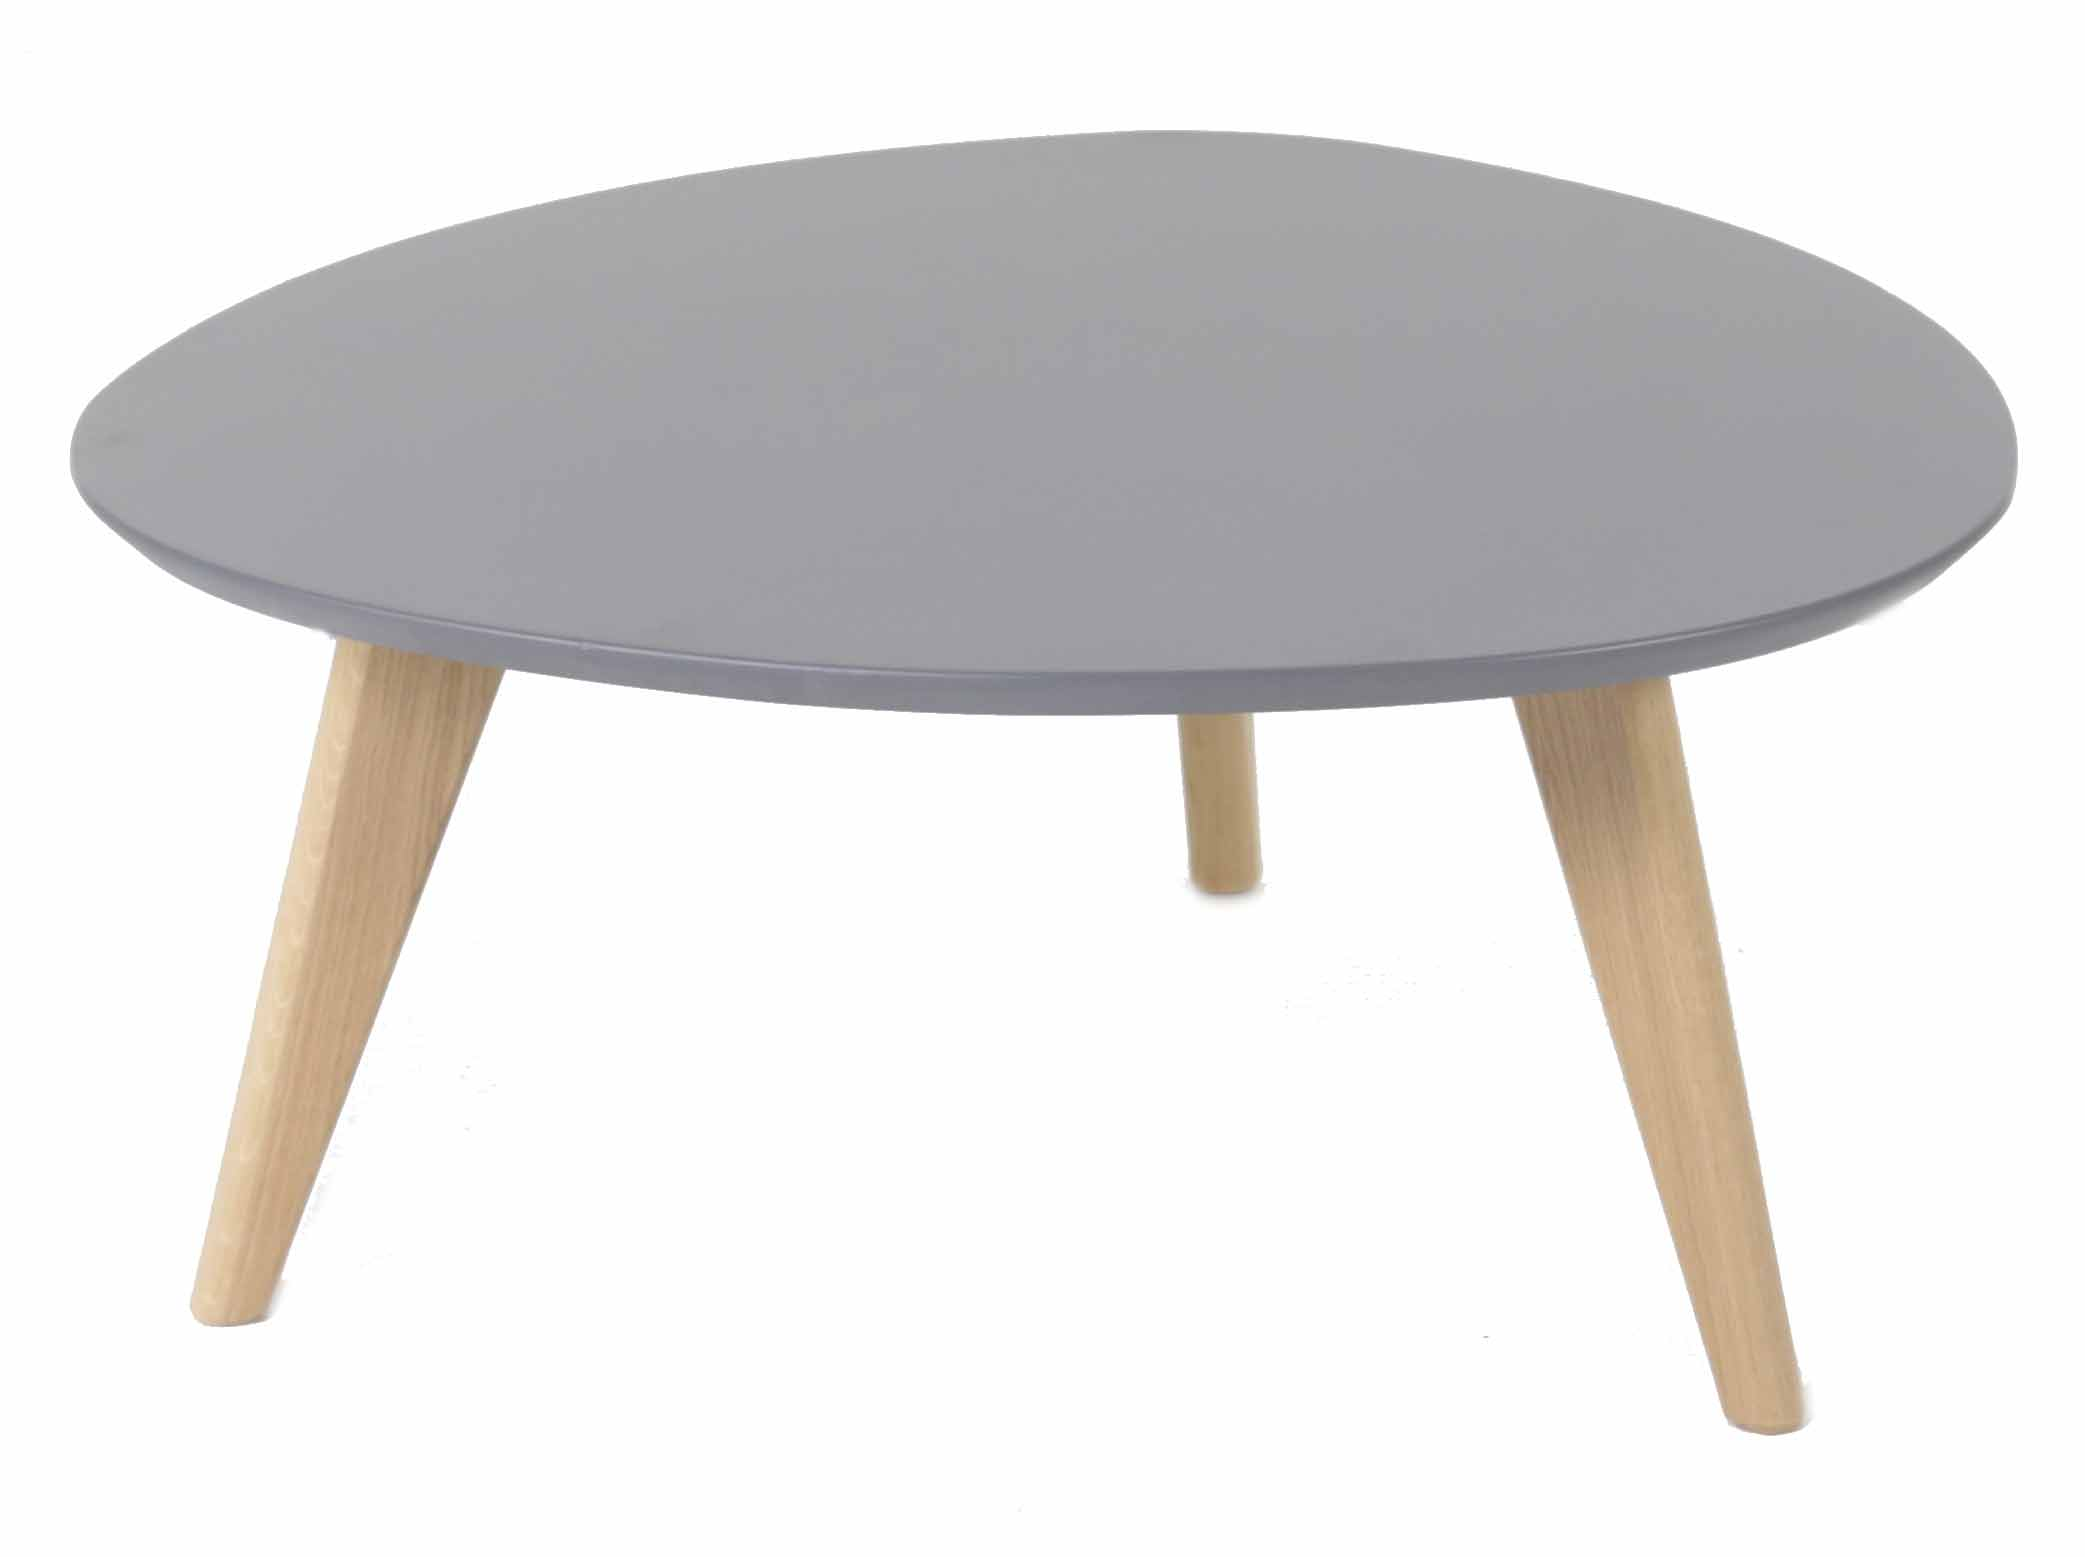 Sejour tables basse table basse ronde plateau gris Table ronde sejour